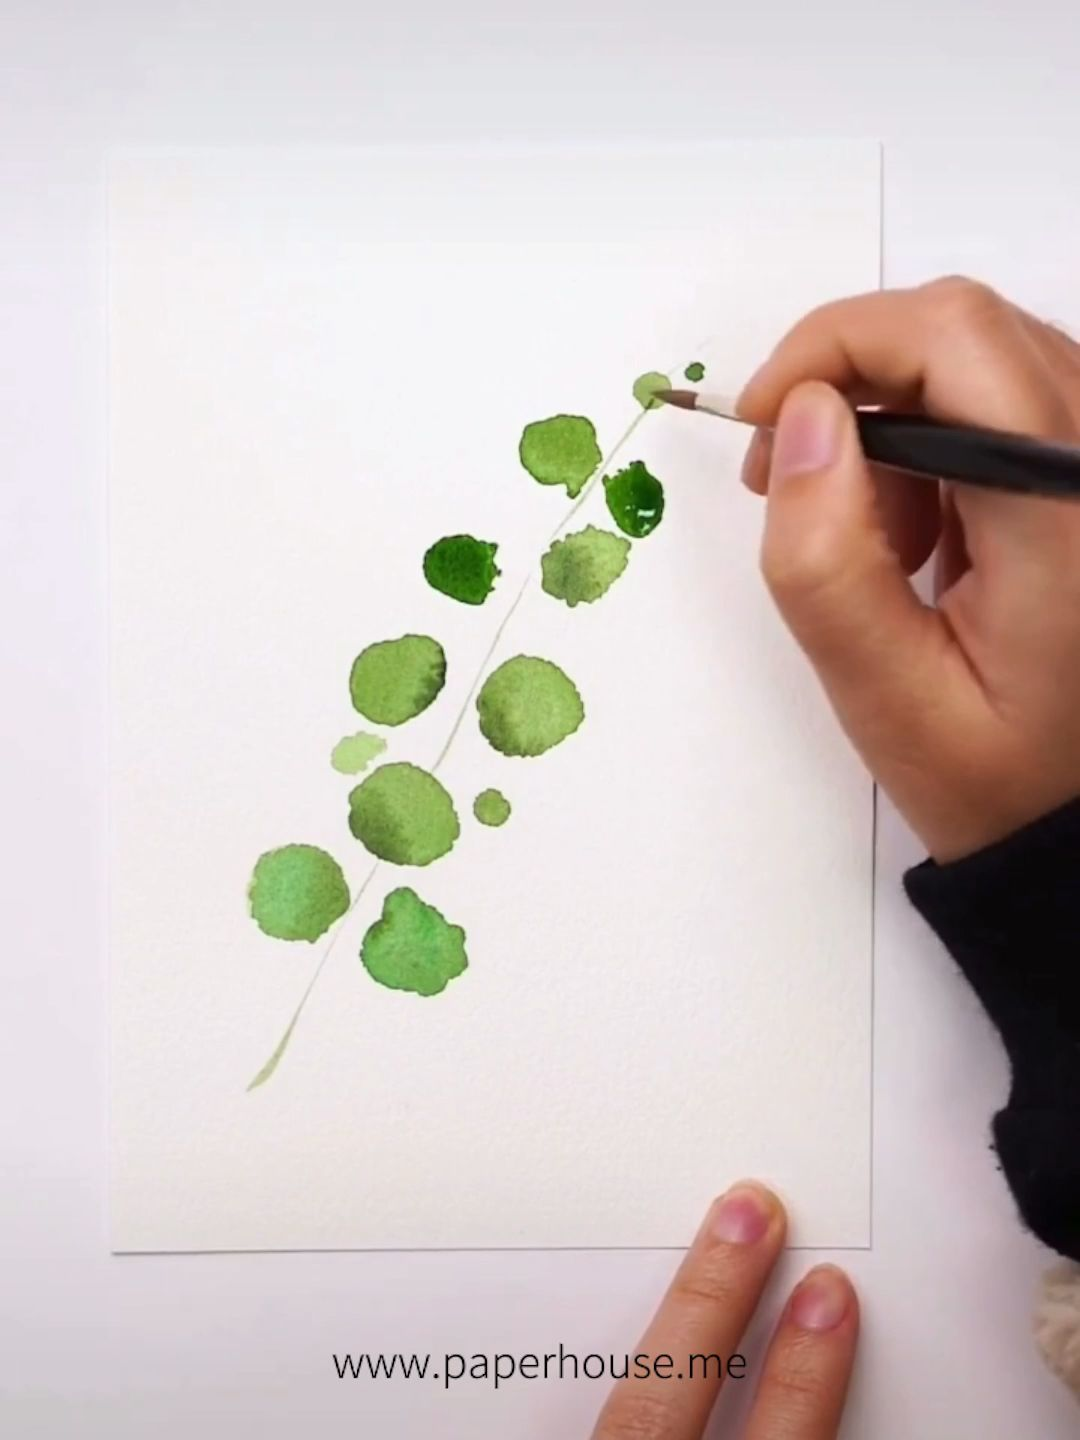 How To Paint This Plants Doodle Shop The Watercolor Essential At